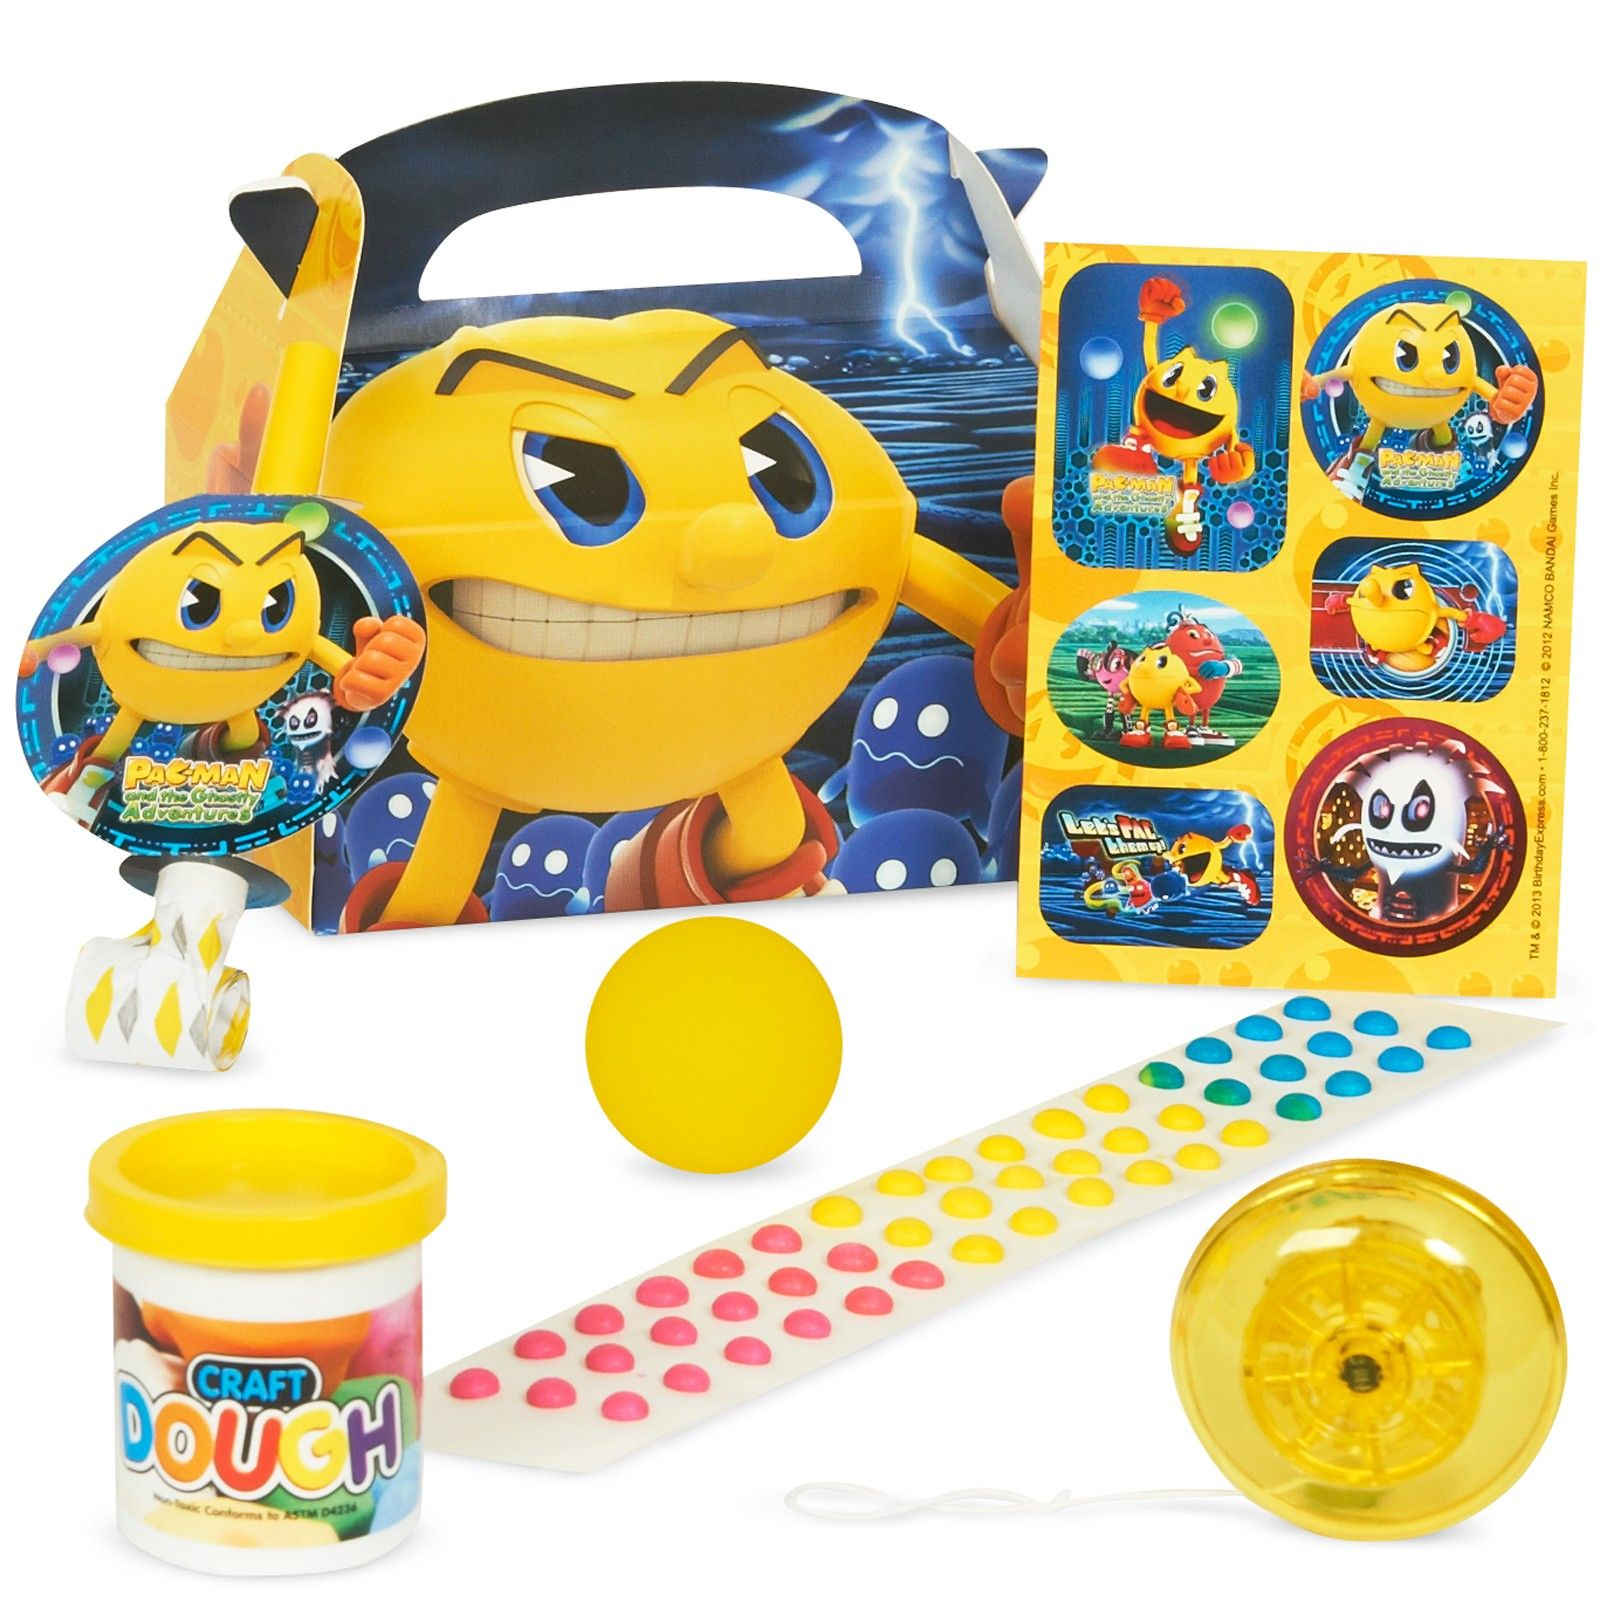 PAC MAN and the Ghostly Adventures Filled Party Favor Box